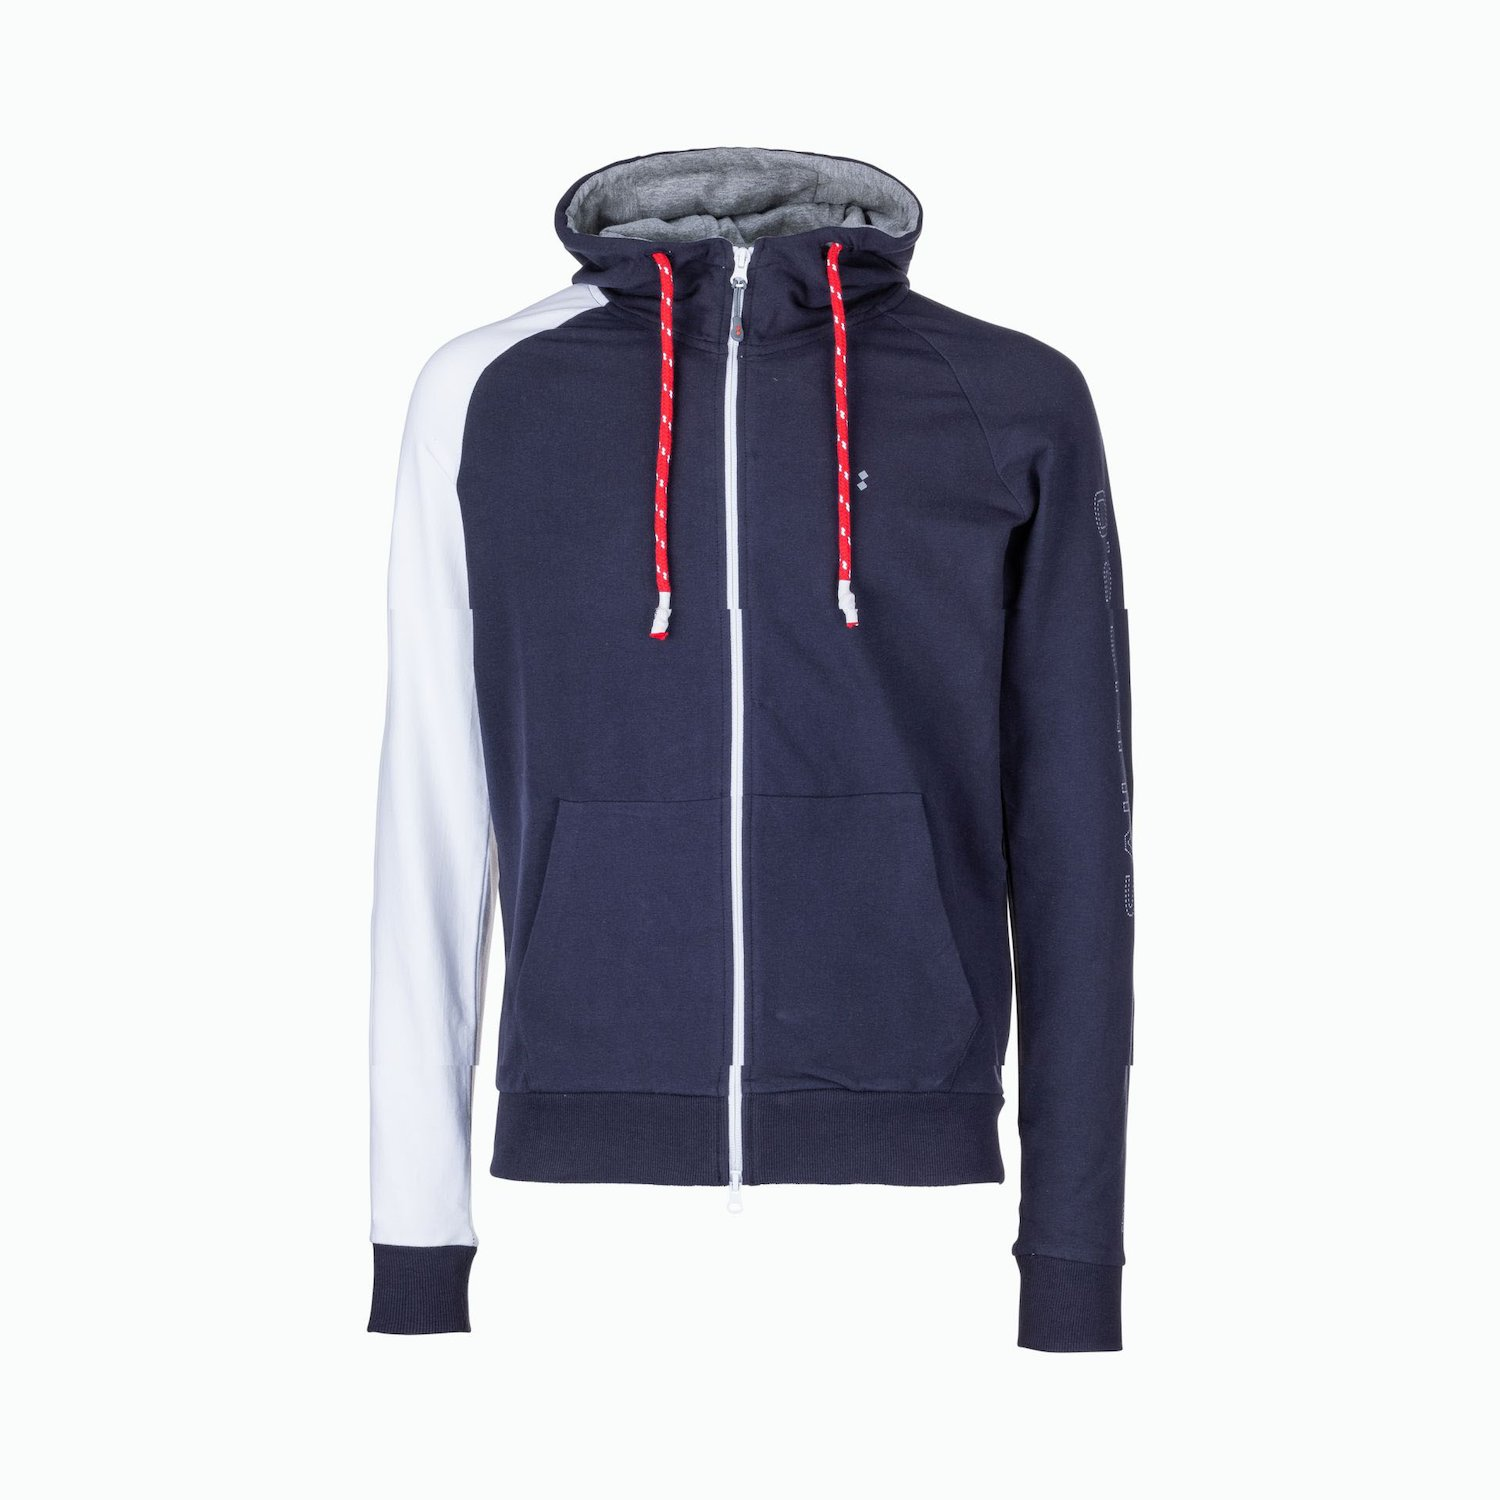 C92 Sweatshirt - Navy